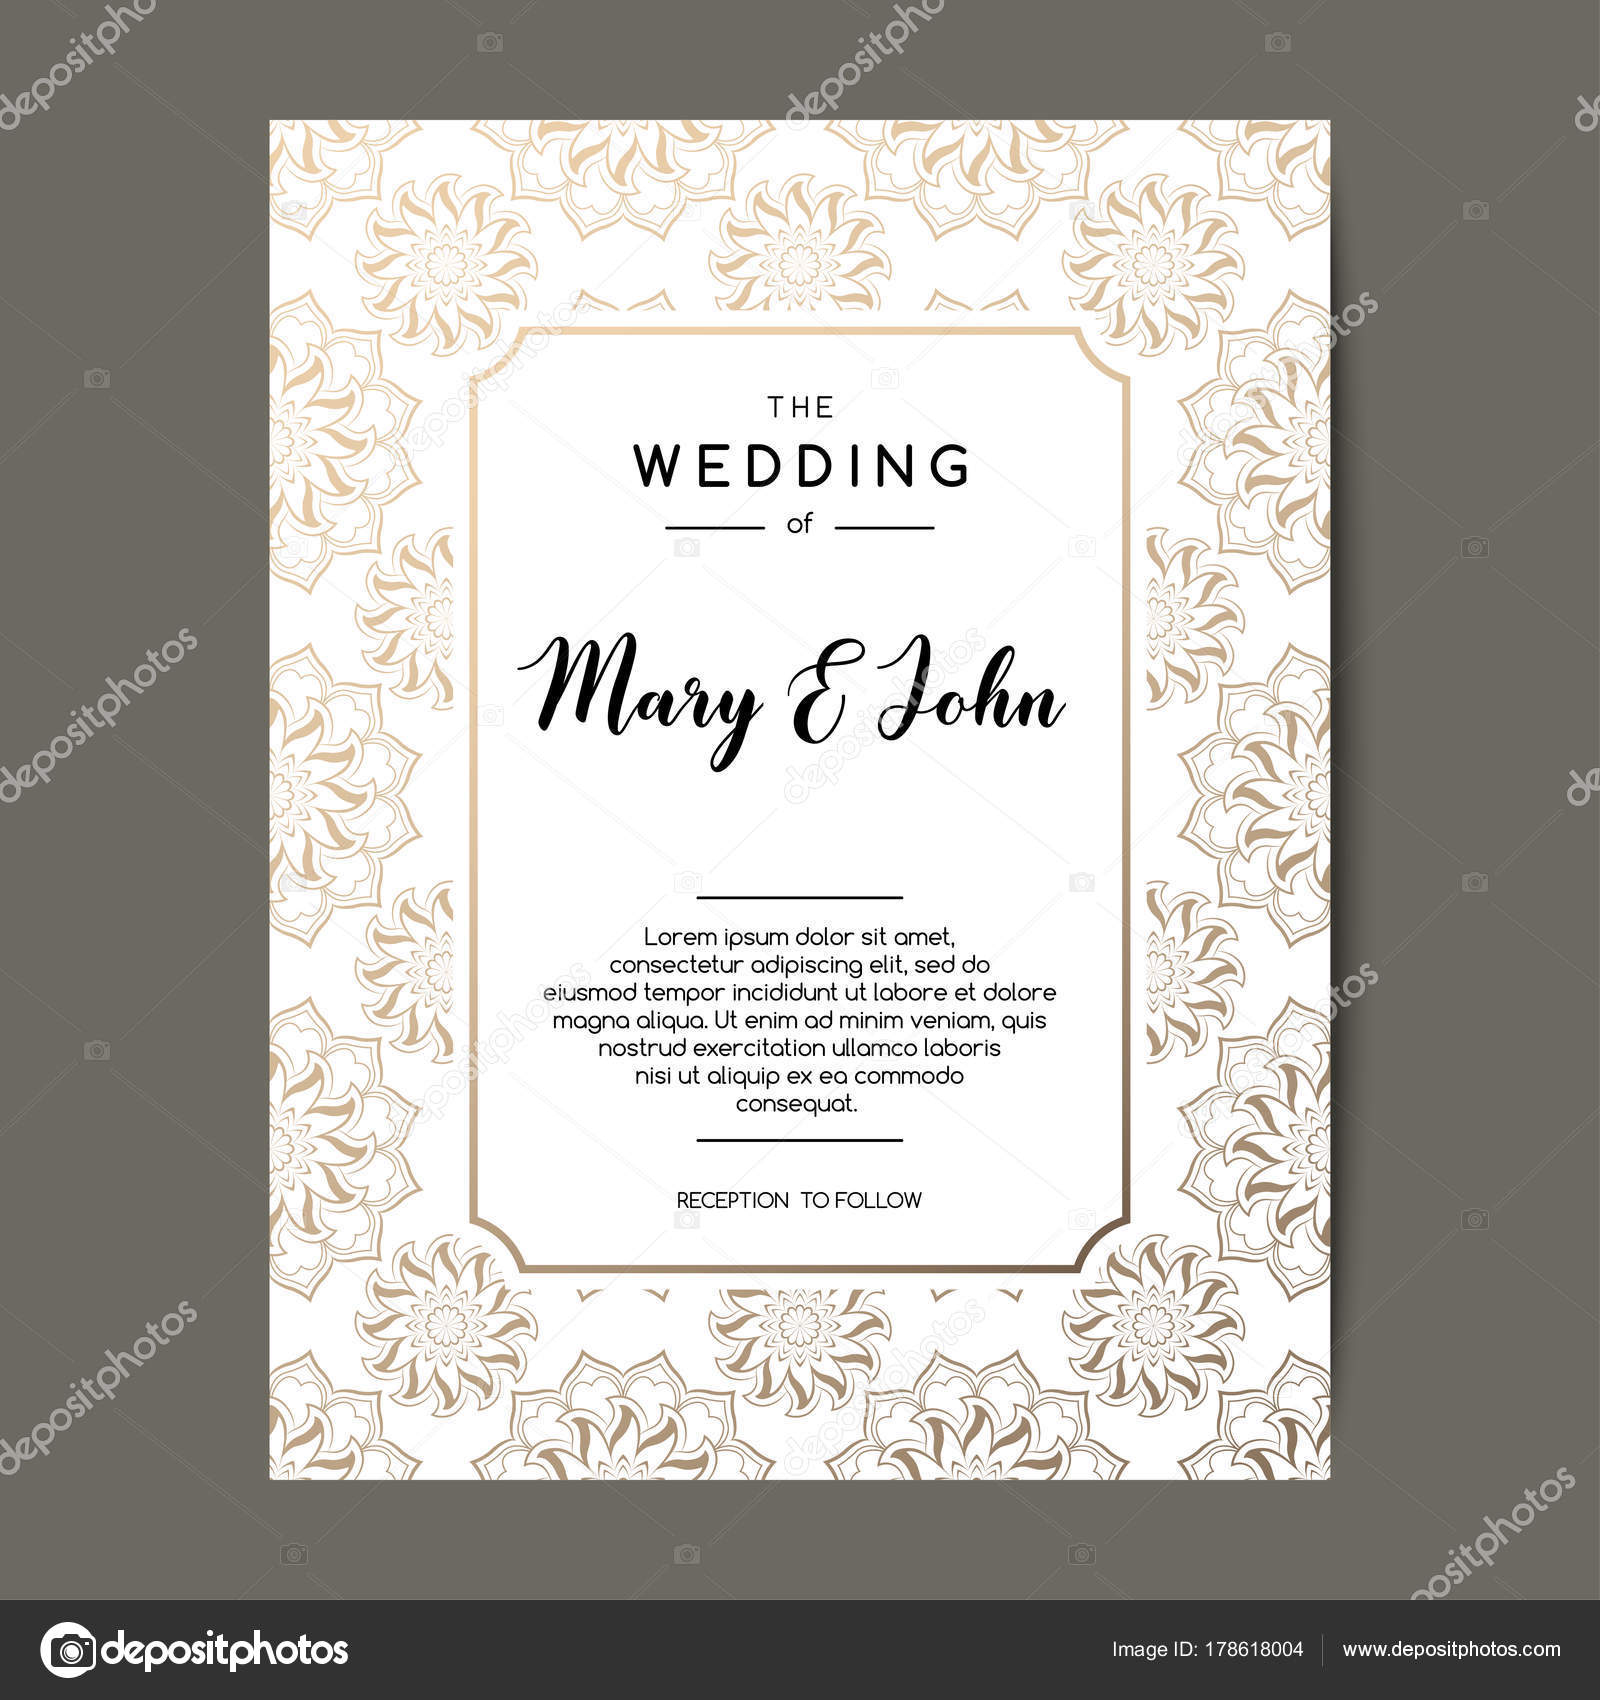 Elegant wedding invitation background card design with gold floral elegant wedding invitation background card design with gold floral ornament vector decorative template vector by pravdinal stopboris Gallery